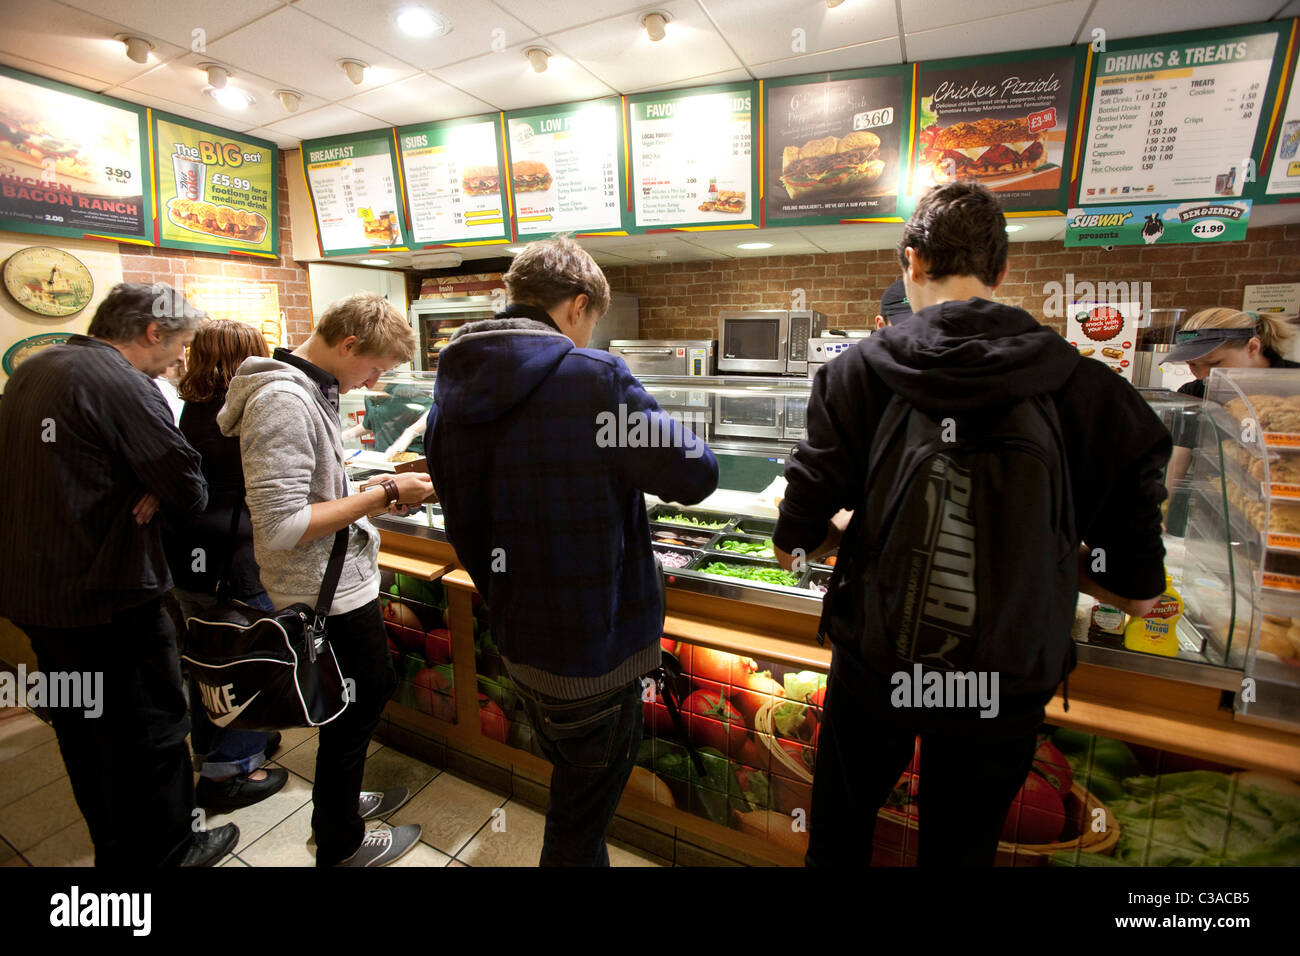 Customers wait in store for their 'subs' to be prepared. - Stock Image